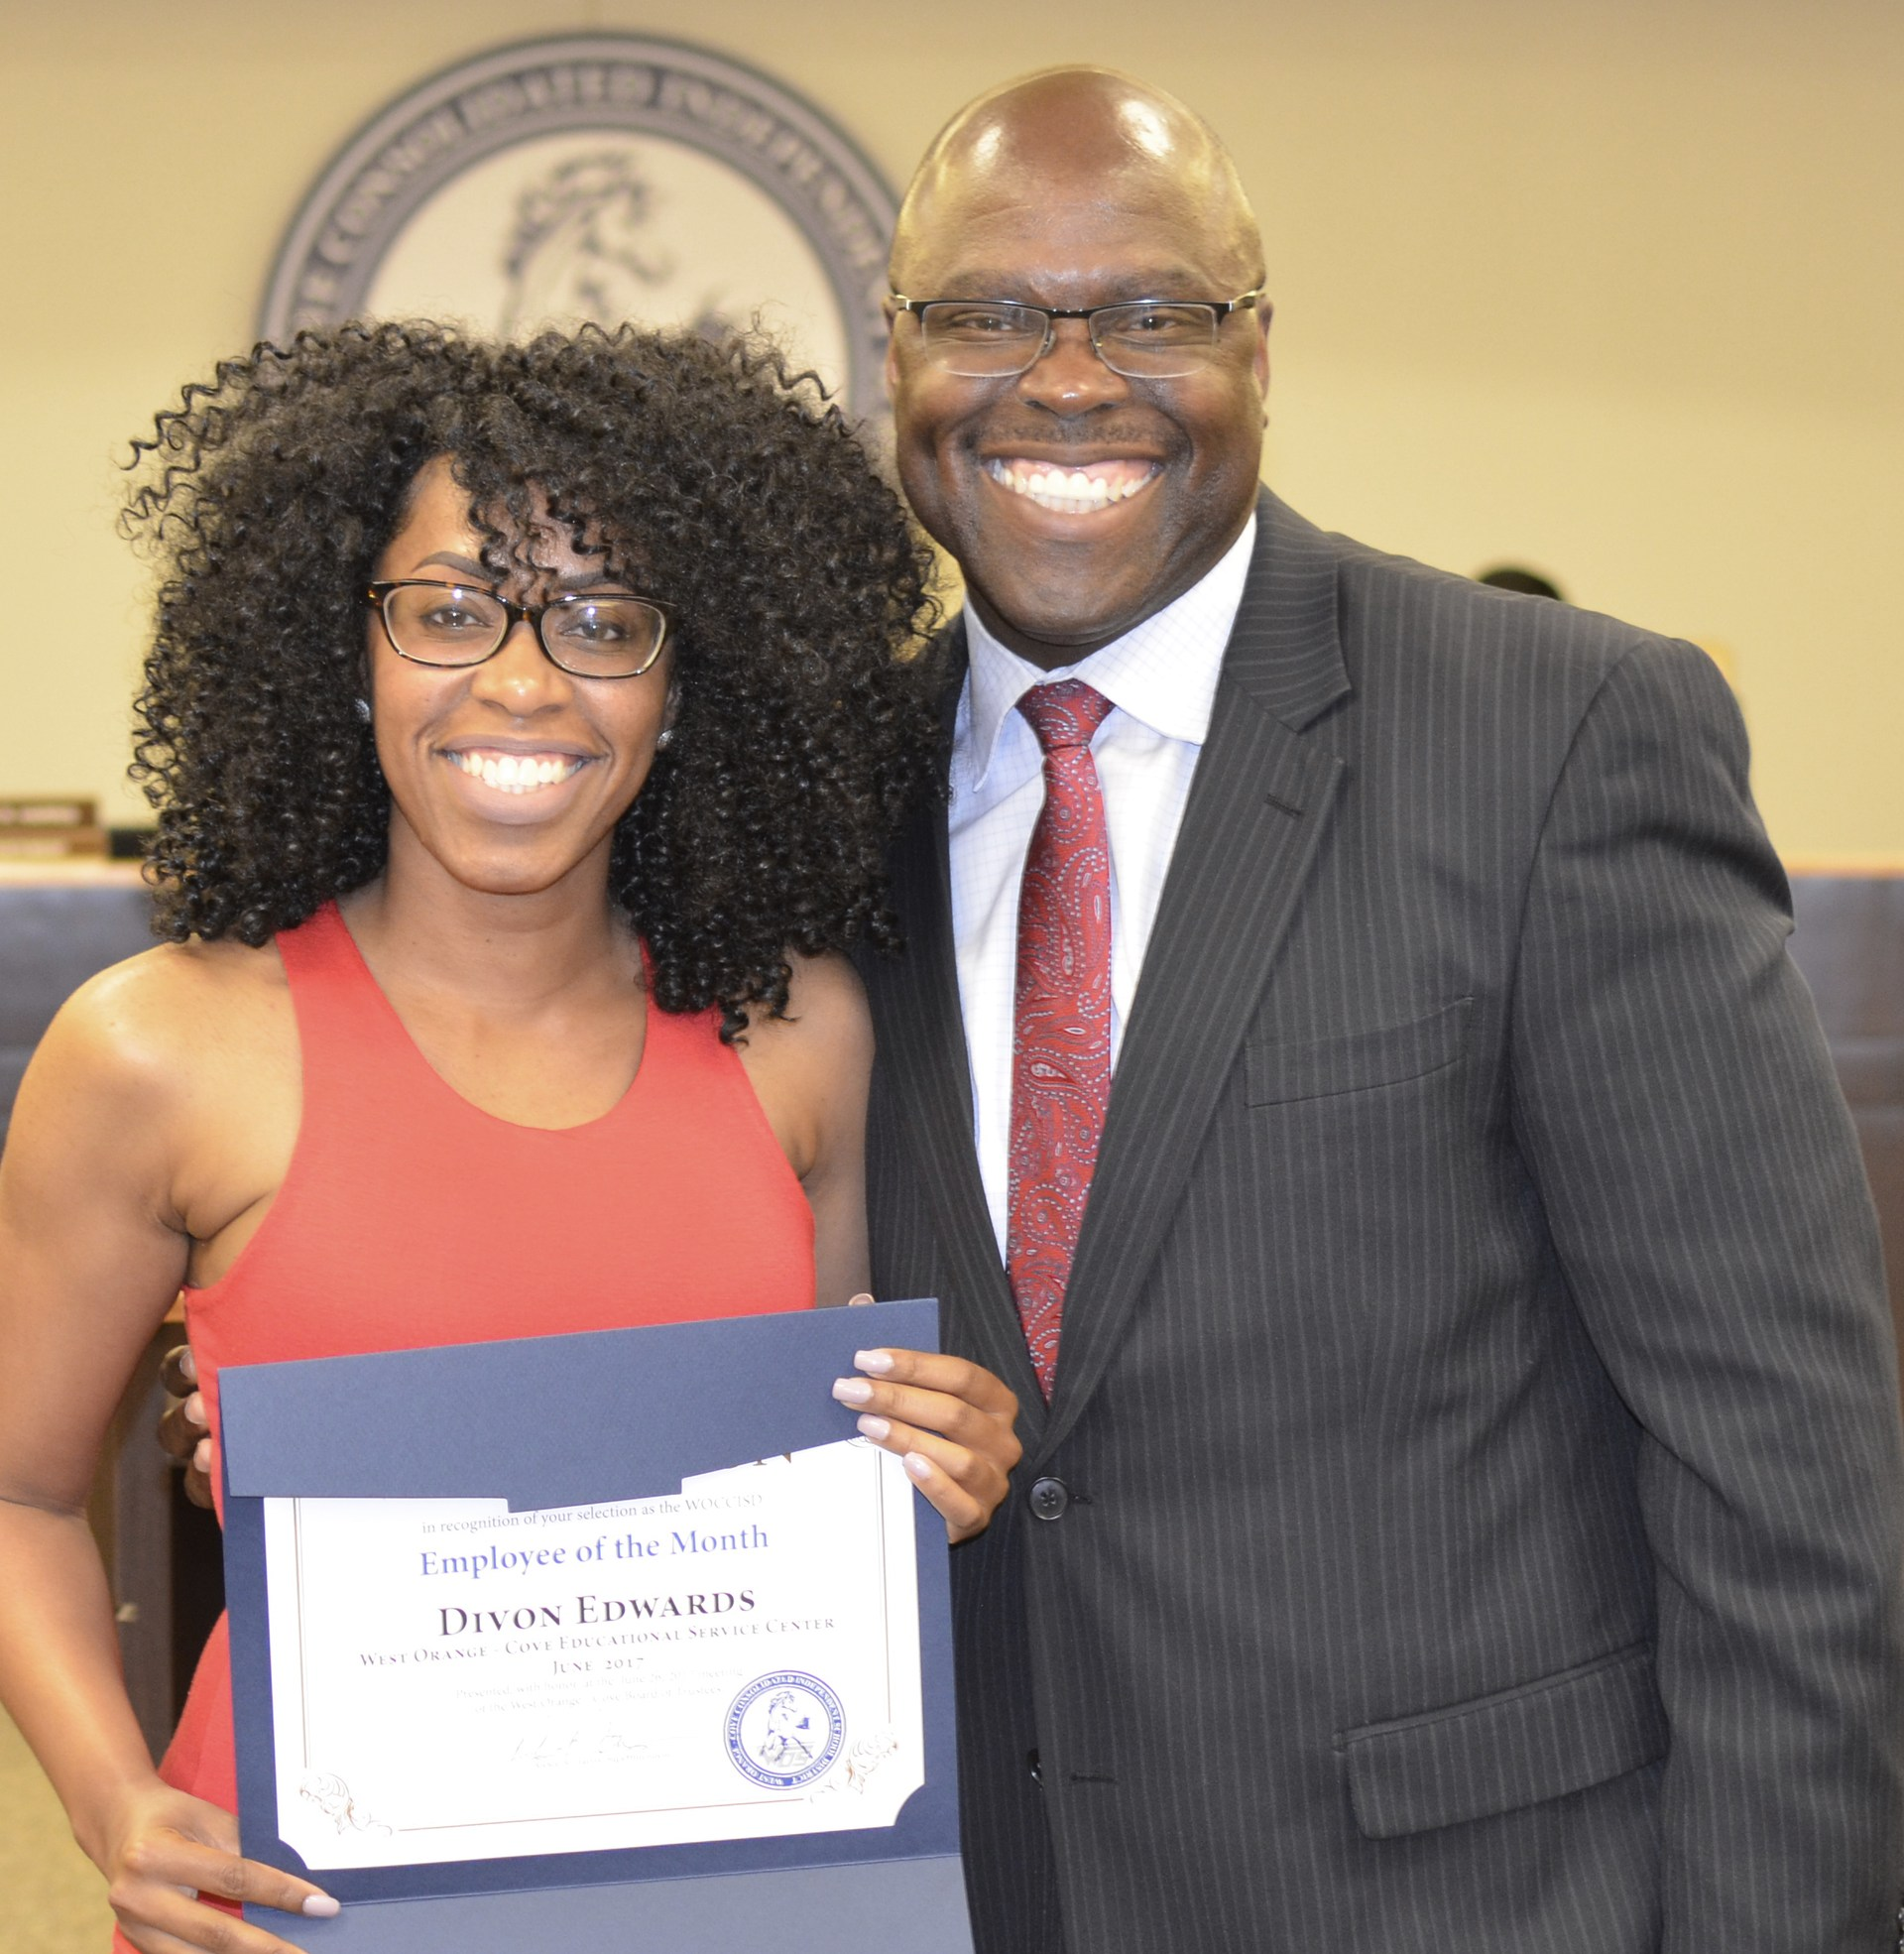 Divon Edwards is recognized as Employee of the Month.